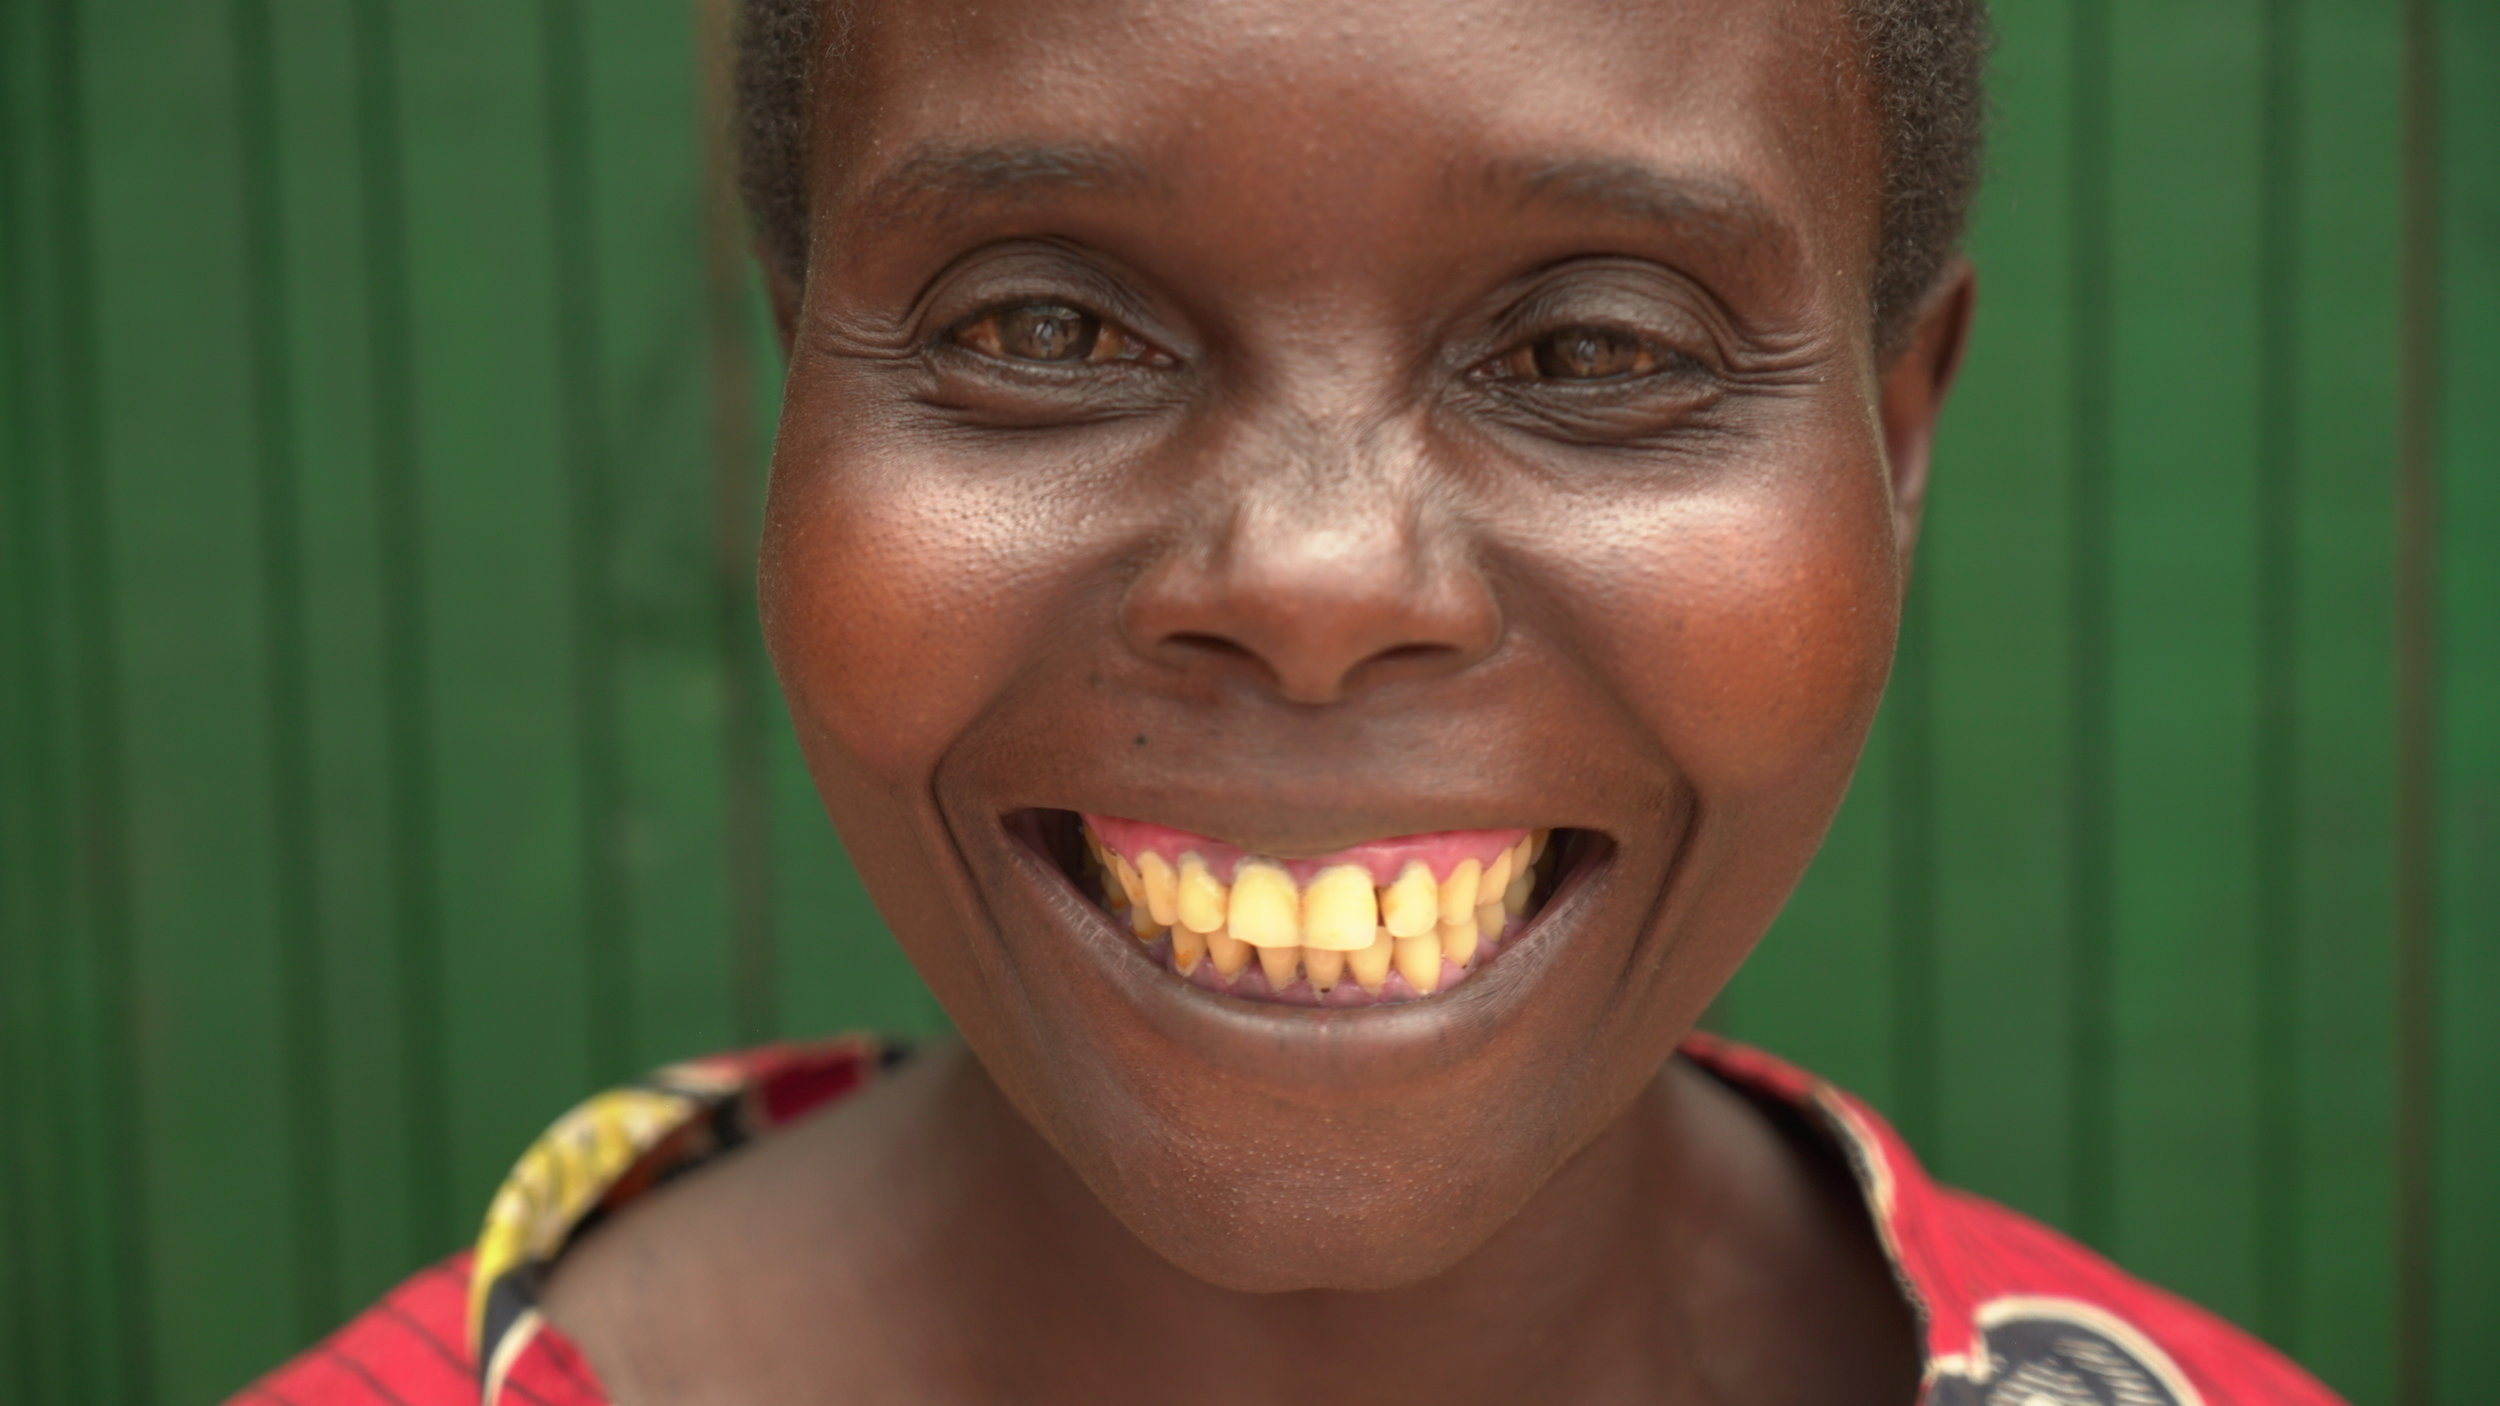 Liberata - is 30 years old and has 2 children. She might have trouble walking but she is skilled at ensuring the bread has a